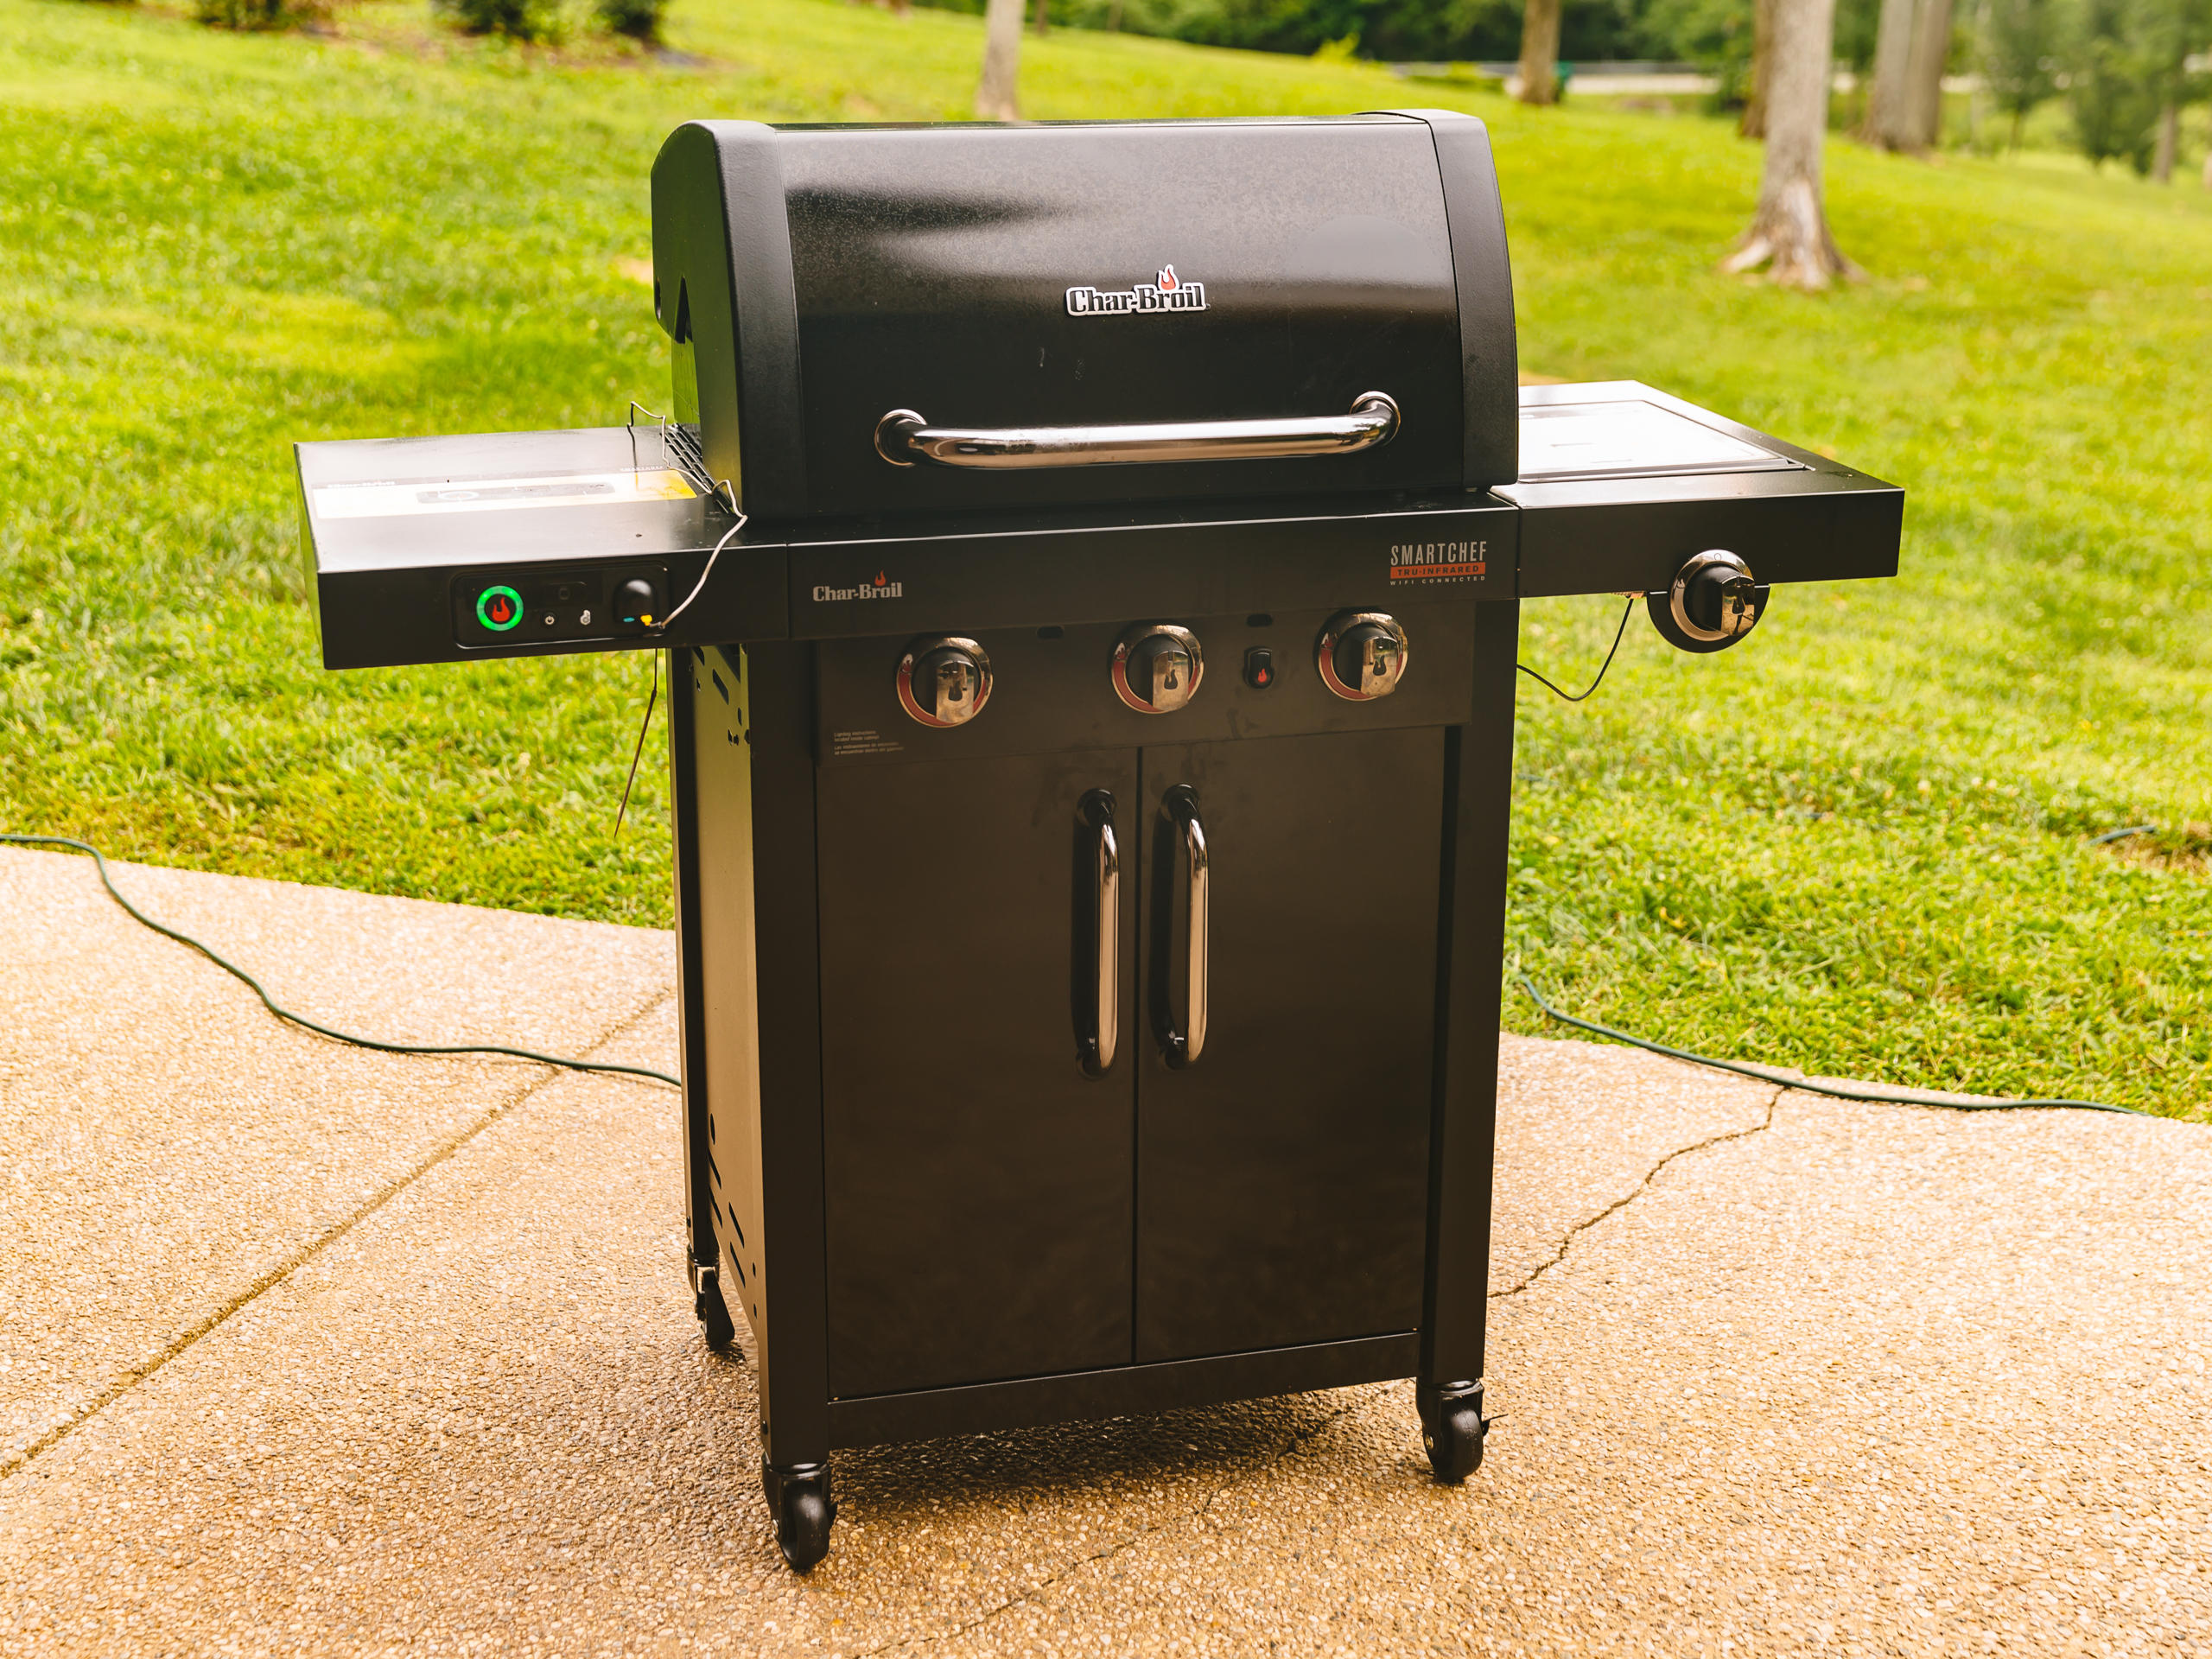 char-broil-smart-chef-tru-infrared-product-photos-1